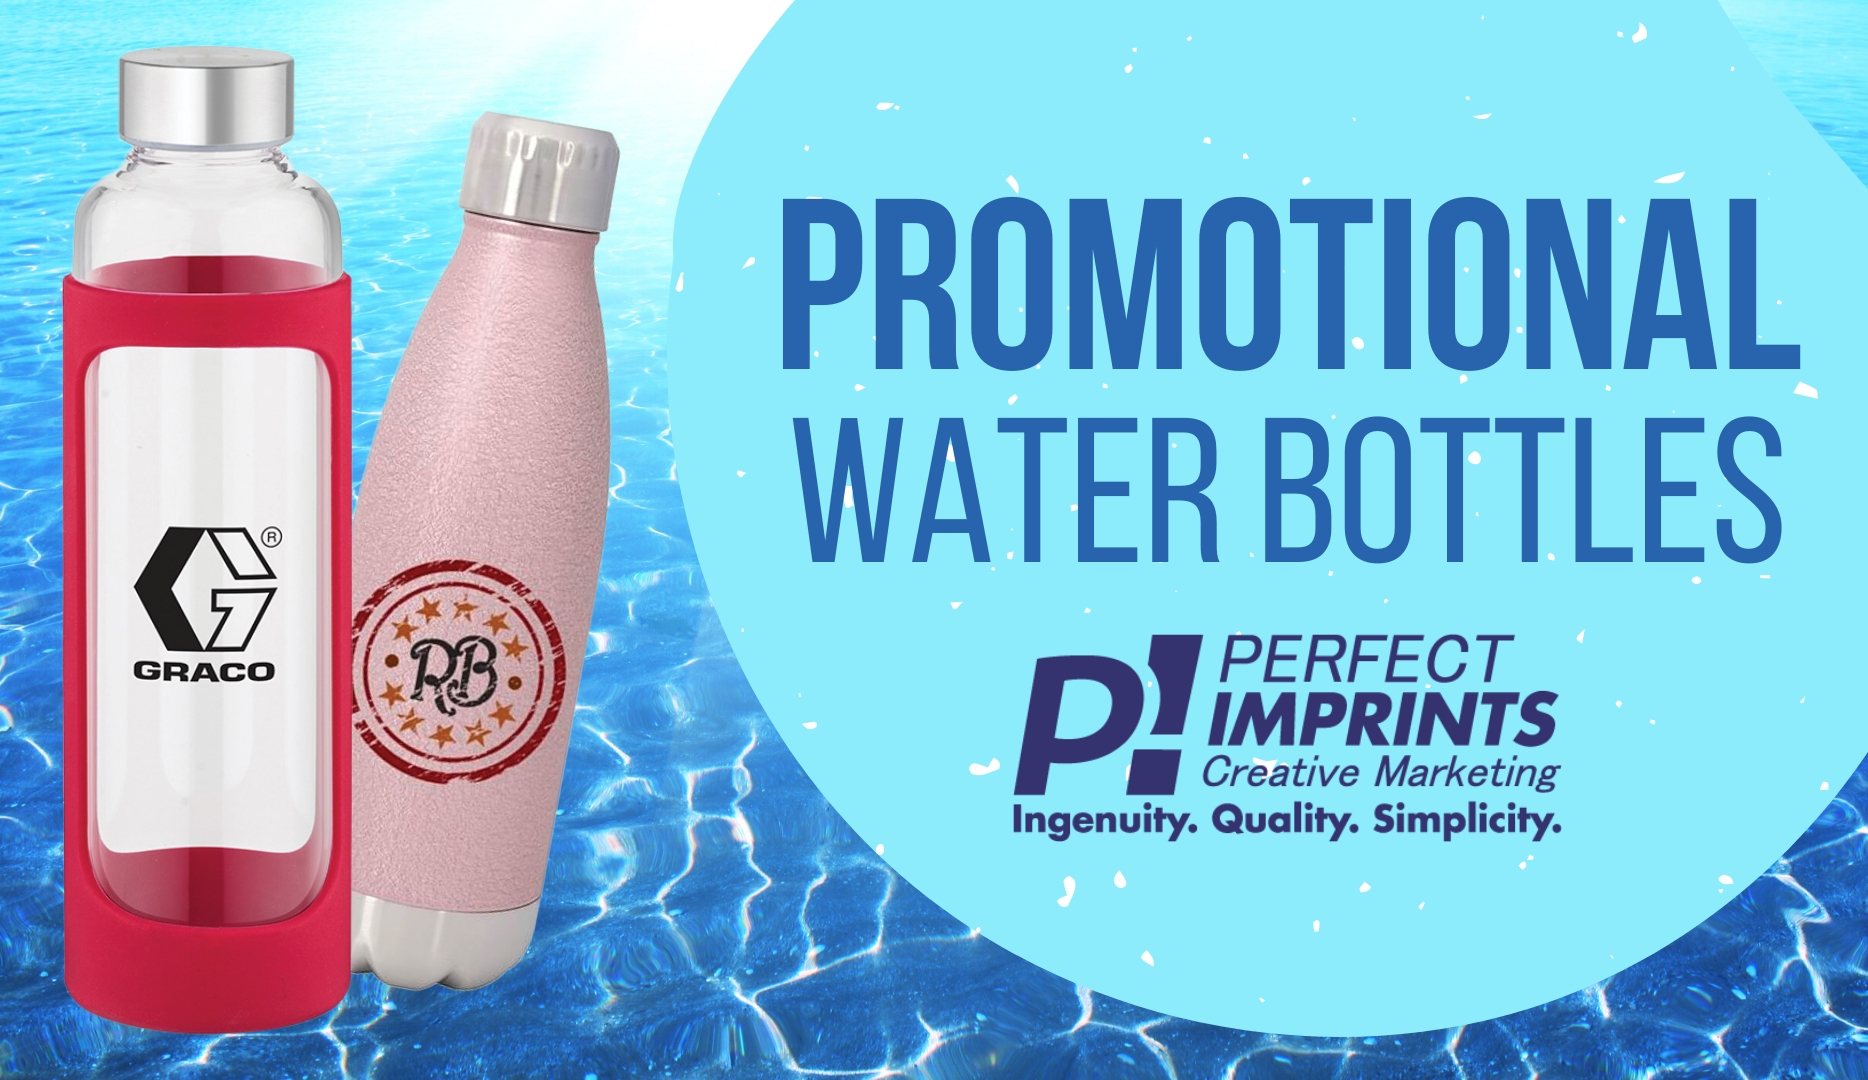 Keeping Cool with Promotional Water Bottles